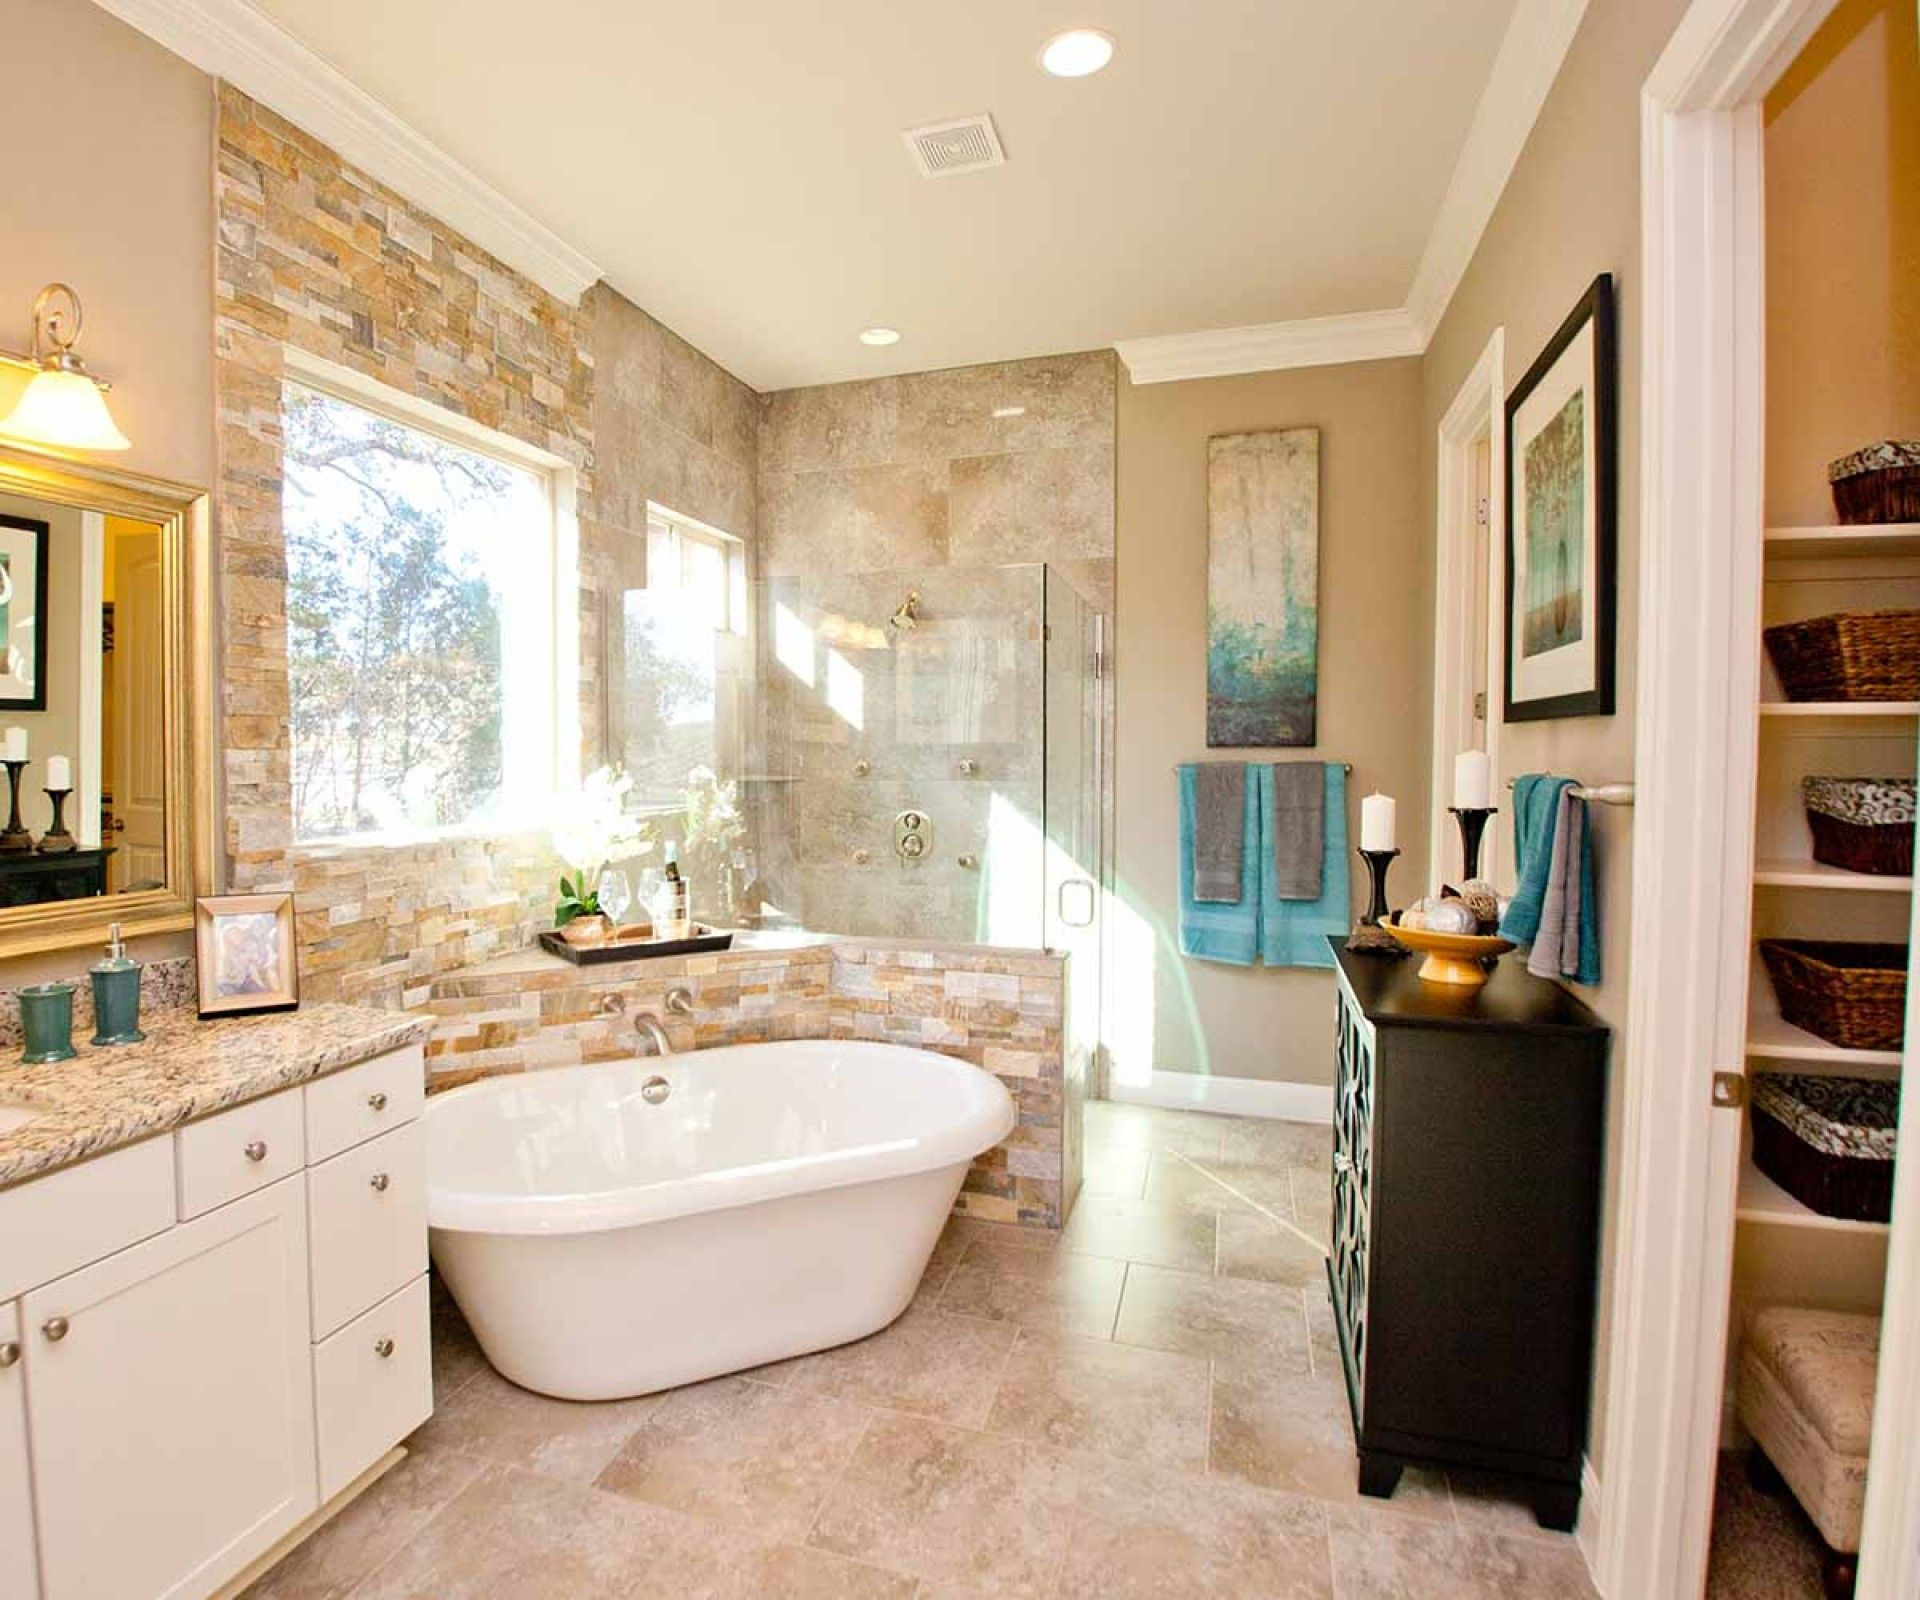 Upgrade To A Beautiful Bathroom With A Luxurious Backsplash In And